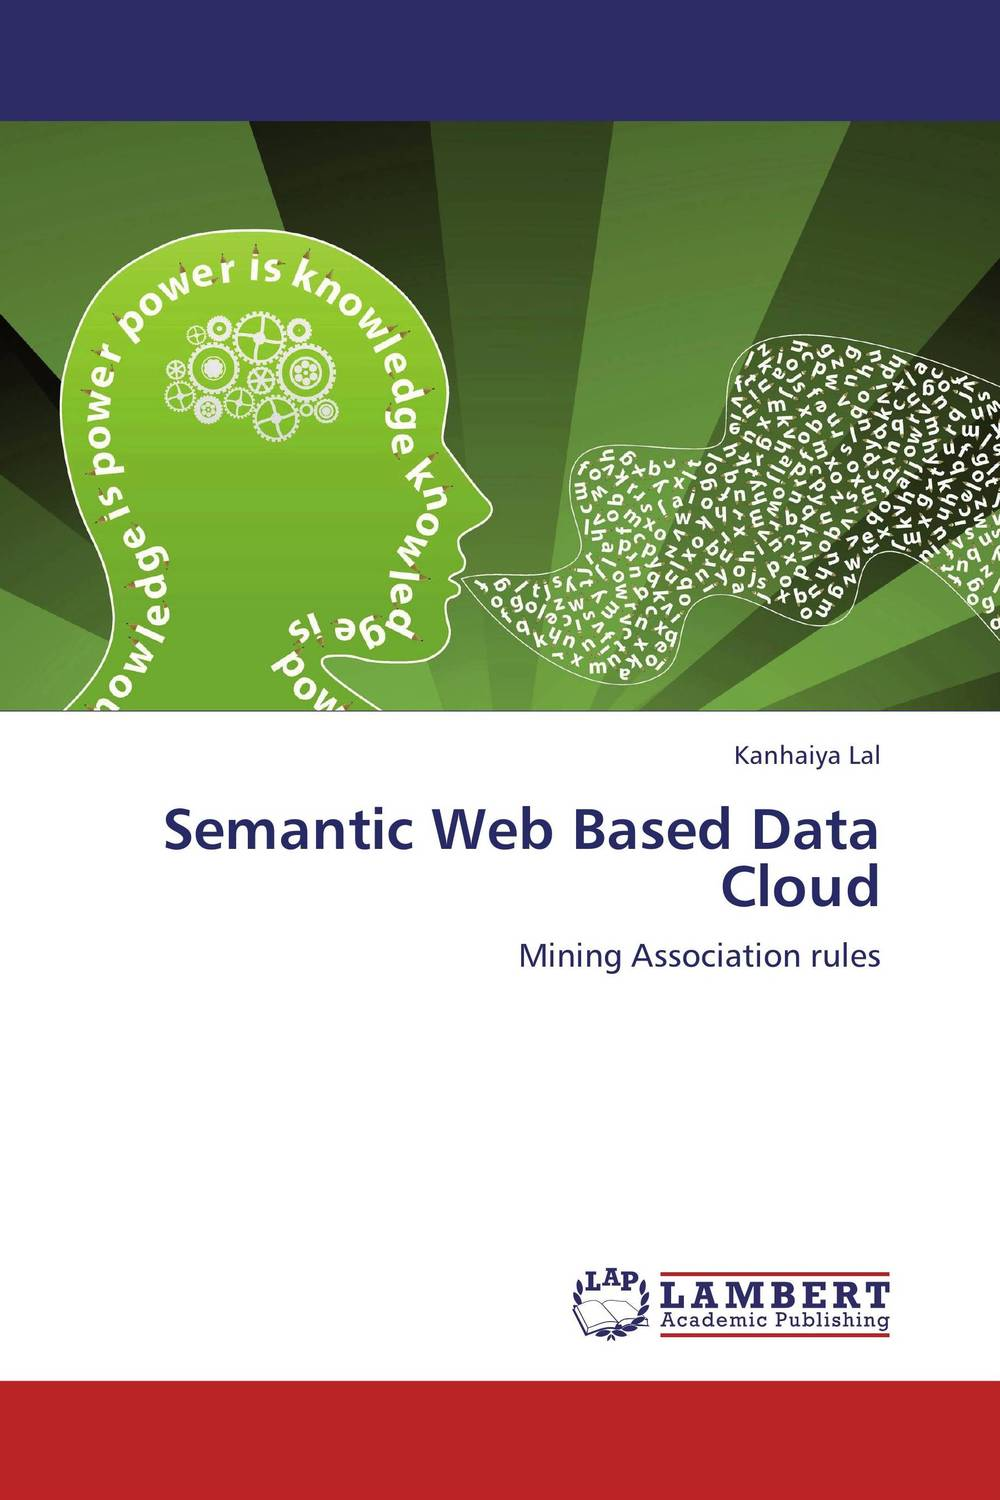 Semantic Web Based Data Cloud web mining